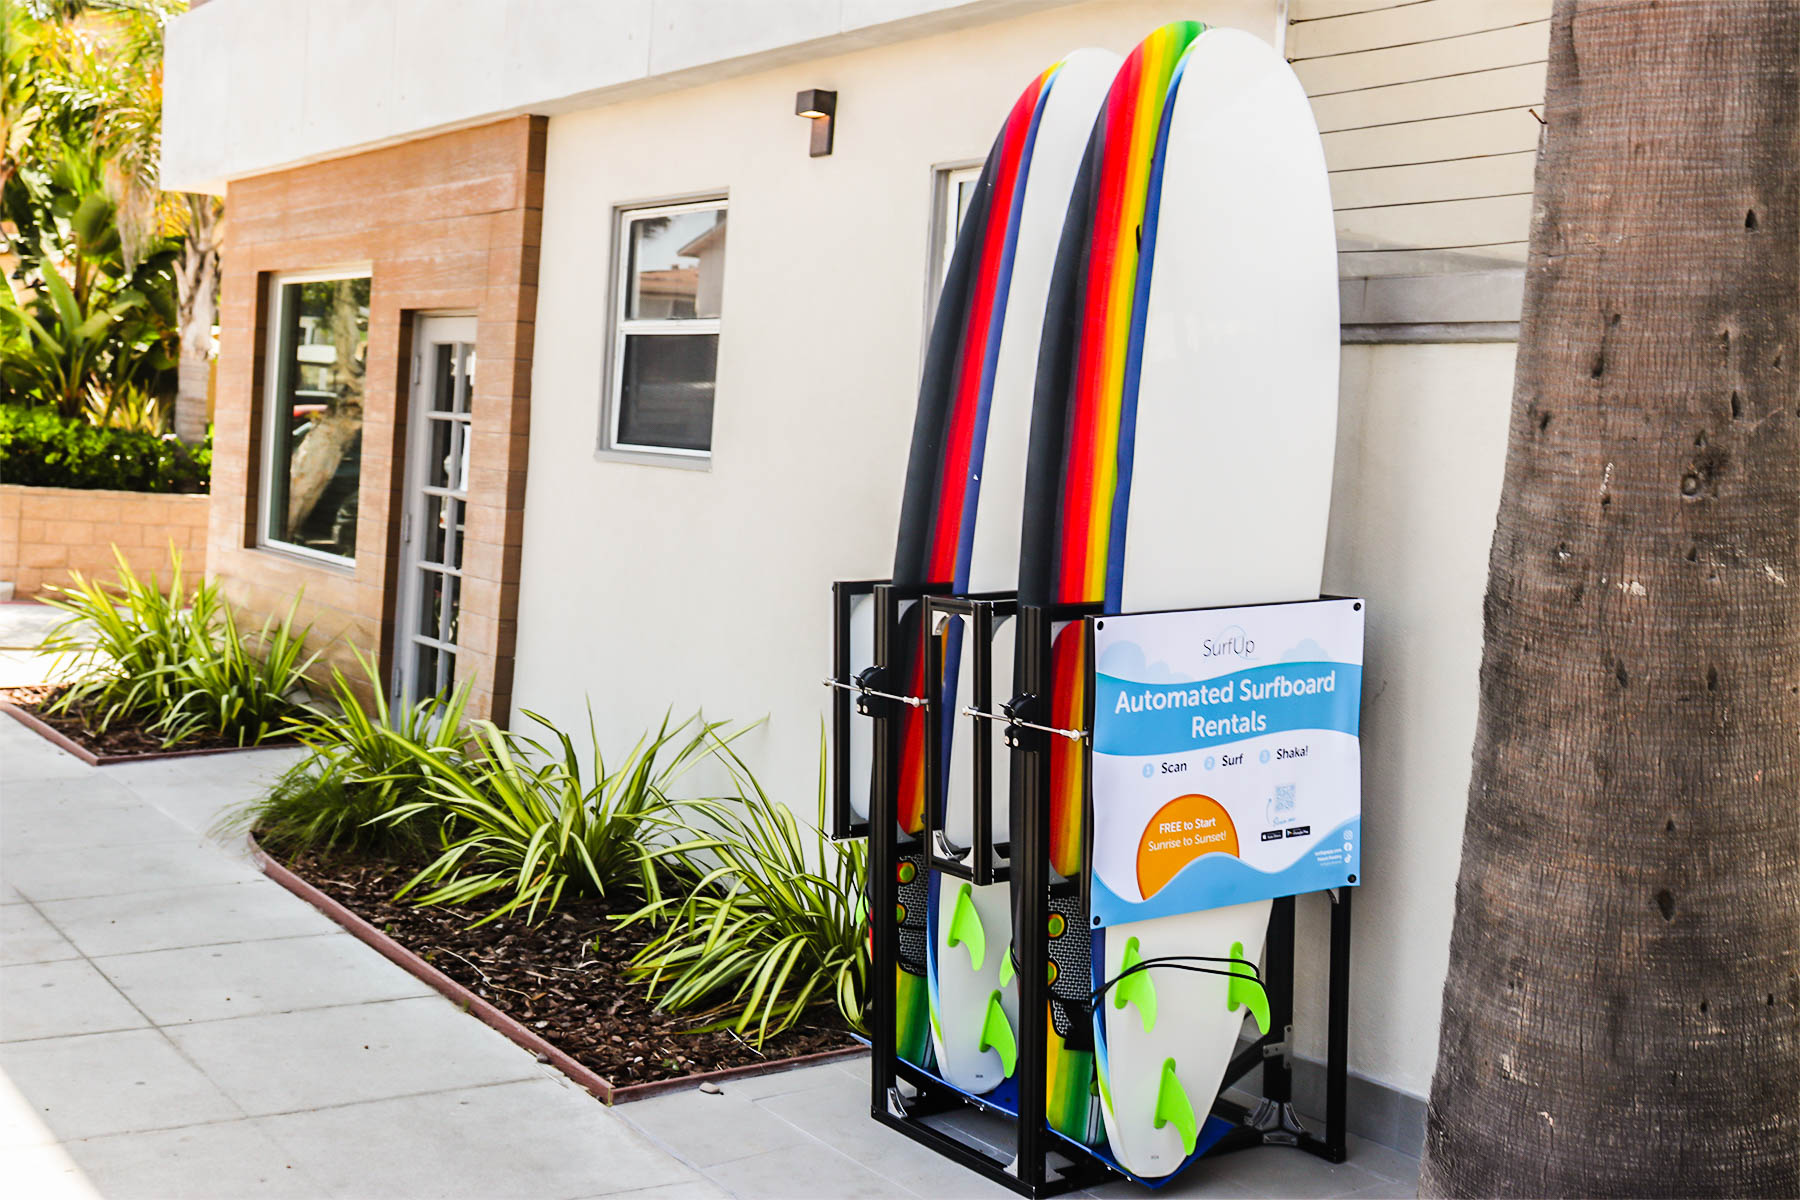 A picture of the SurfPod at the Diamond Head Inn